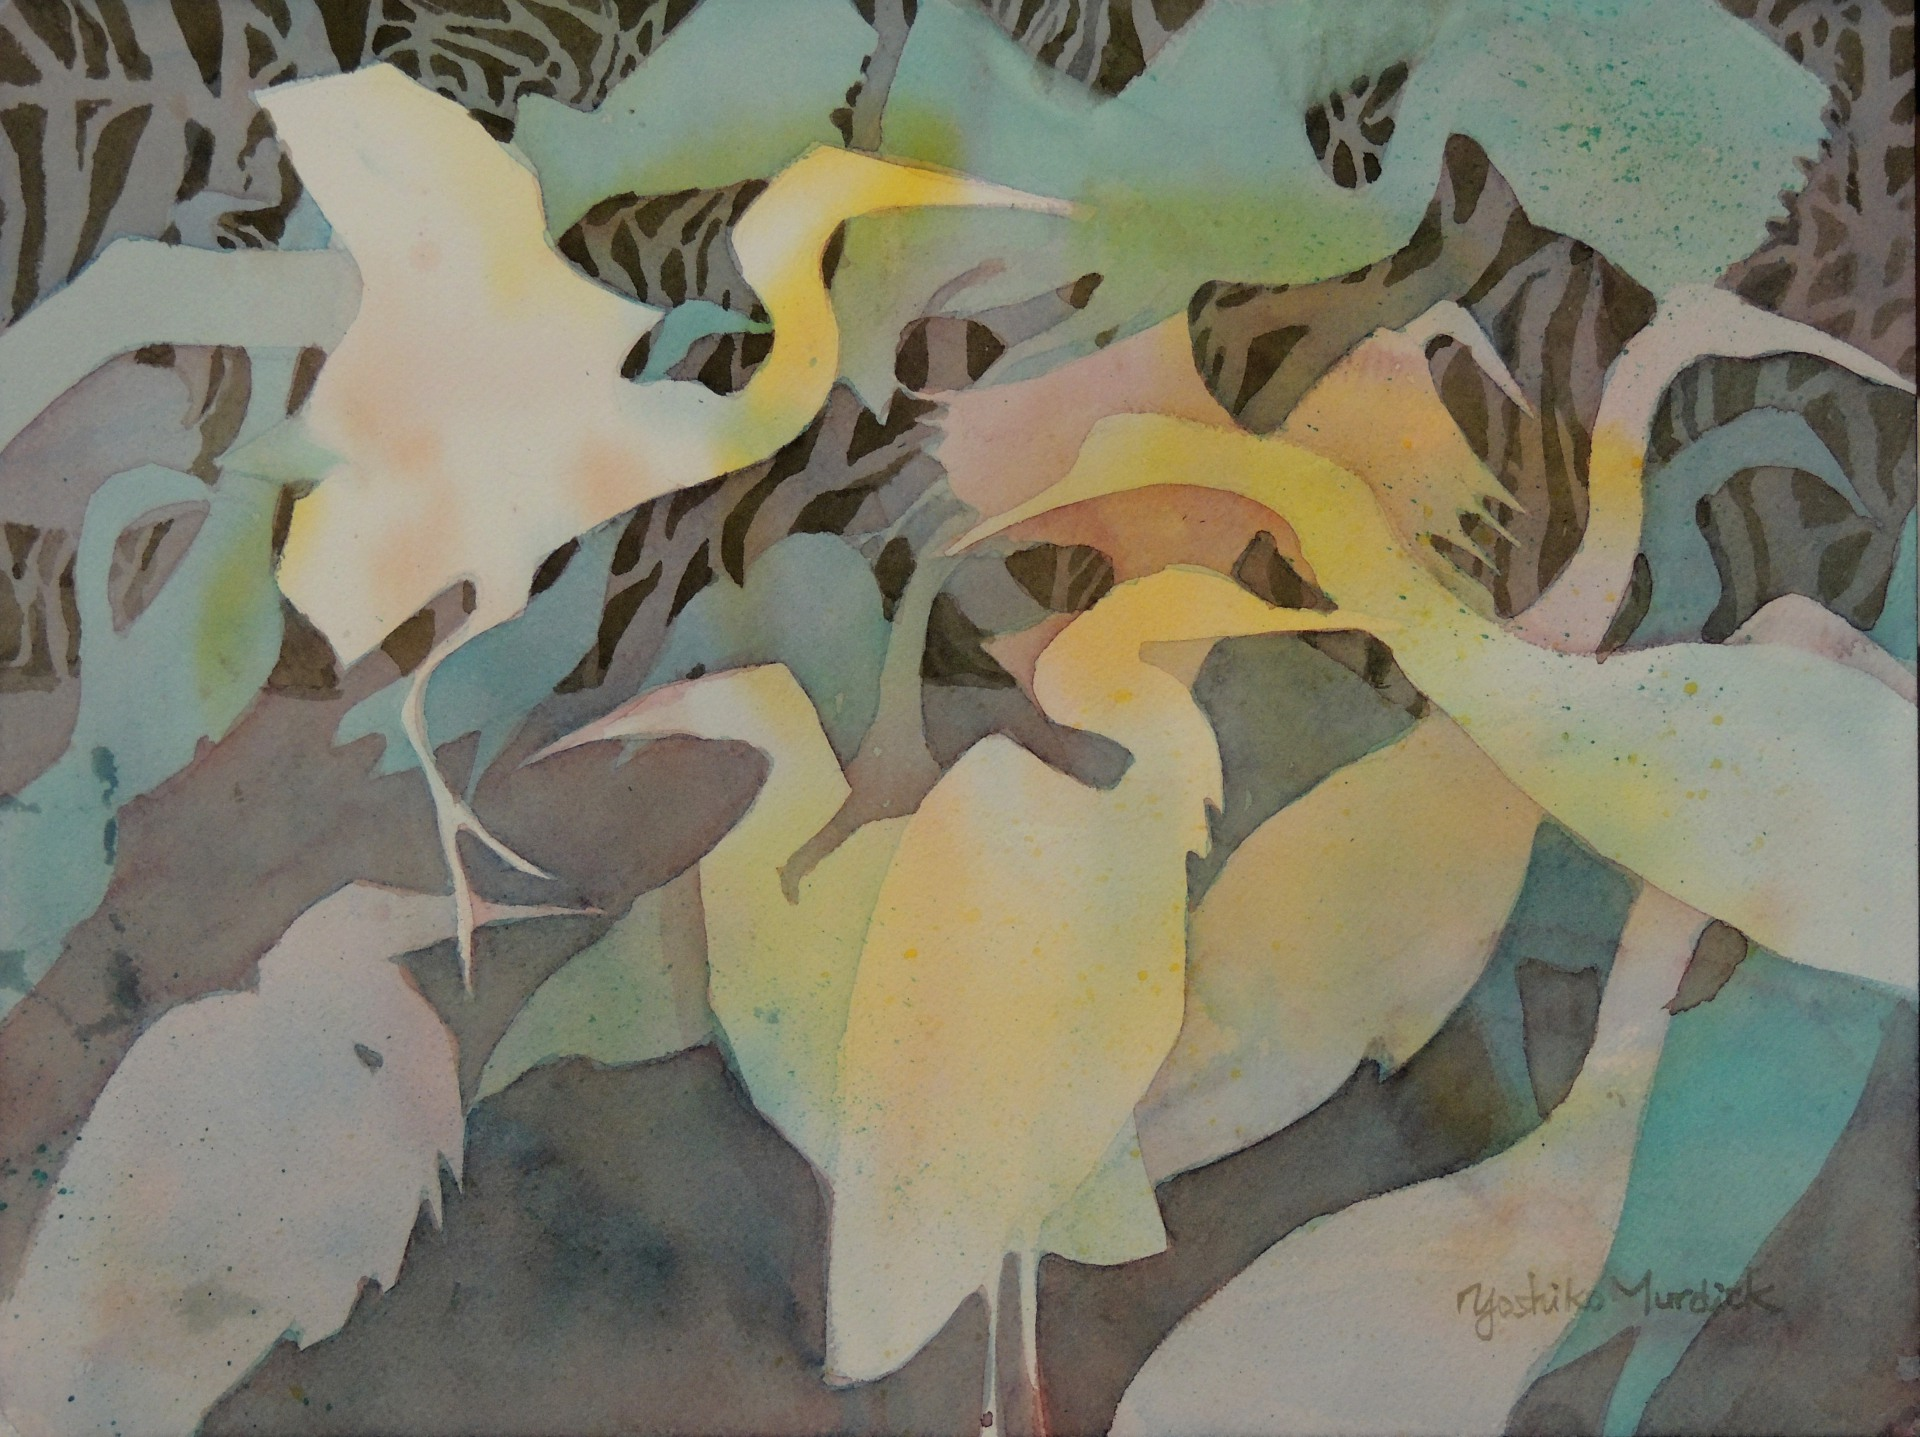 Egrets in Abstract (2014)